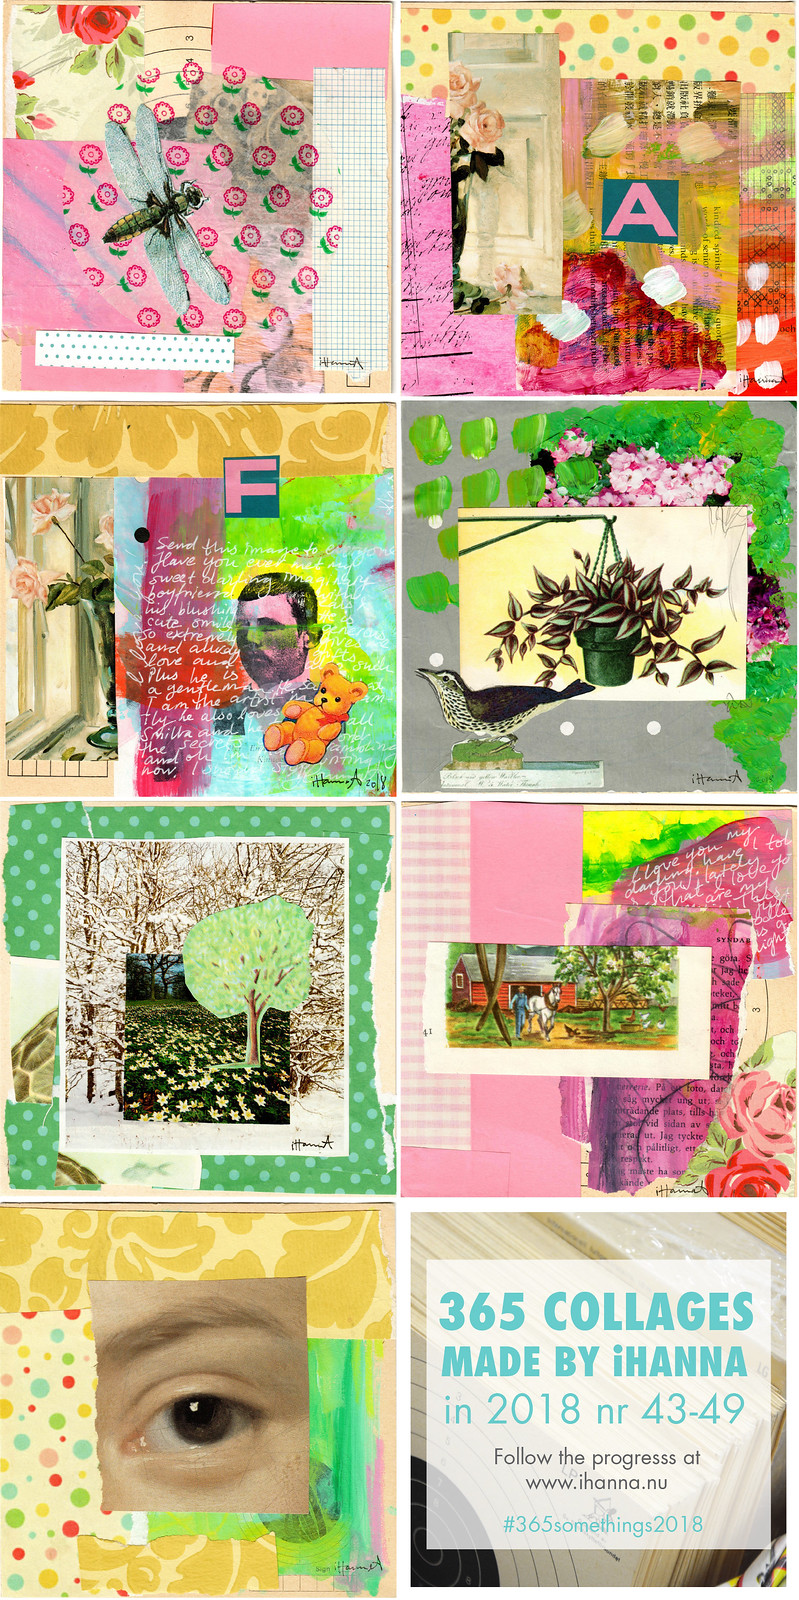 iHanna's 365 Somethings 2018 week 7 by iHanna #365somethings2018 #collage